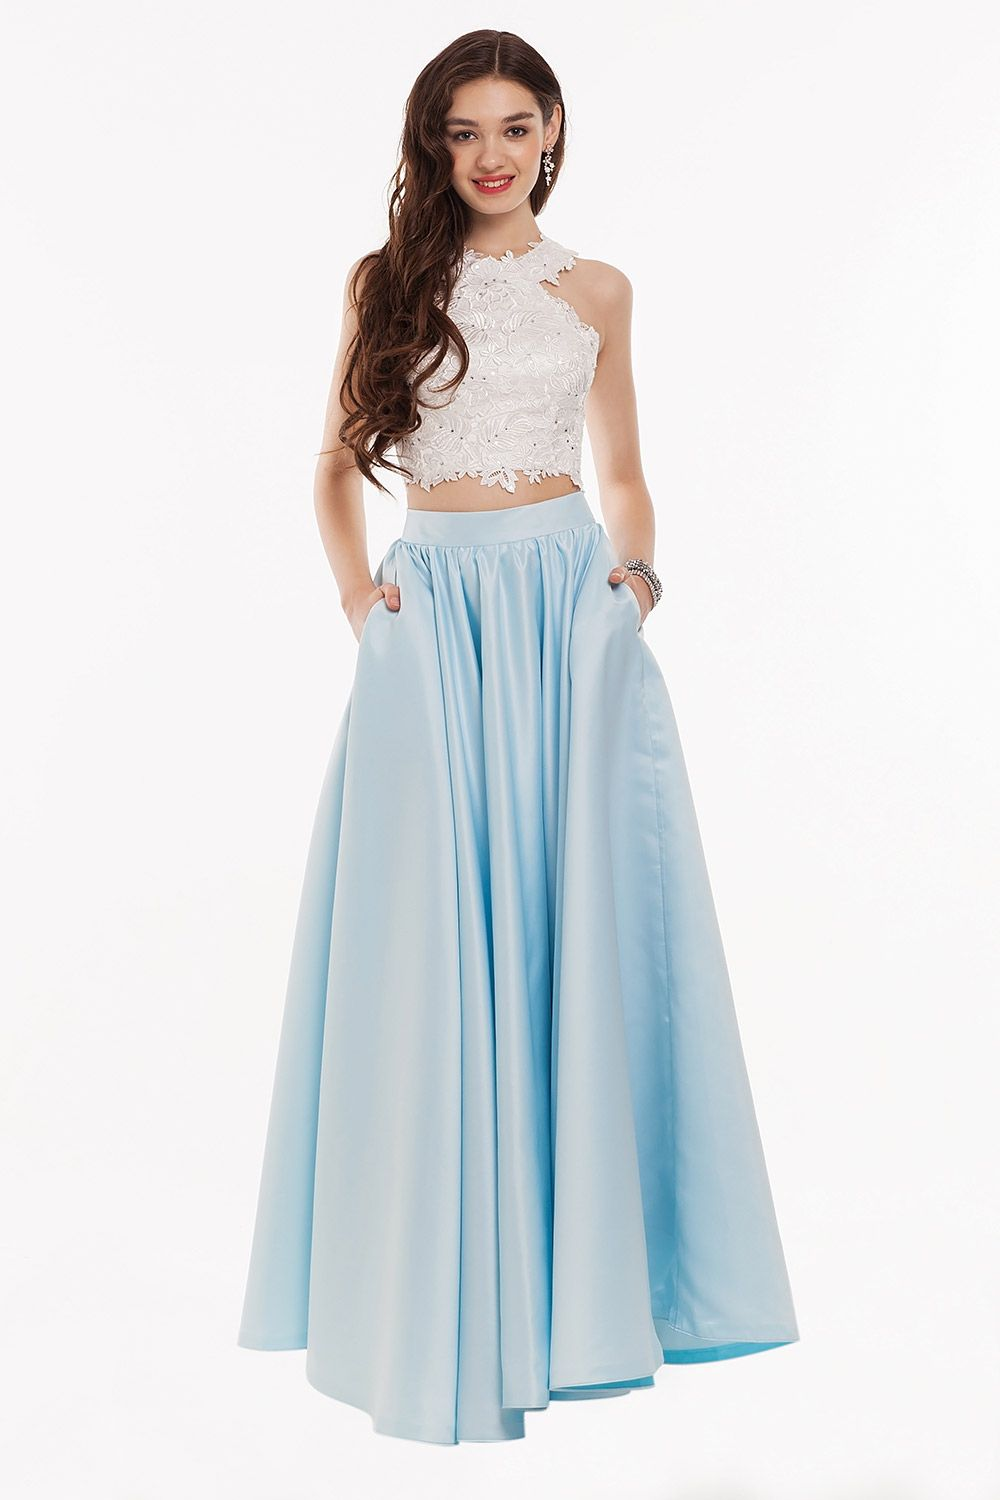 Kieran Dress: Two Piece Ice Blue Halter Neck Fit & Flare Long Prom ...